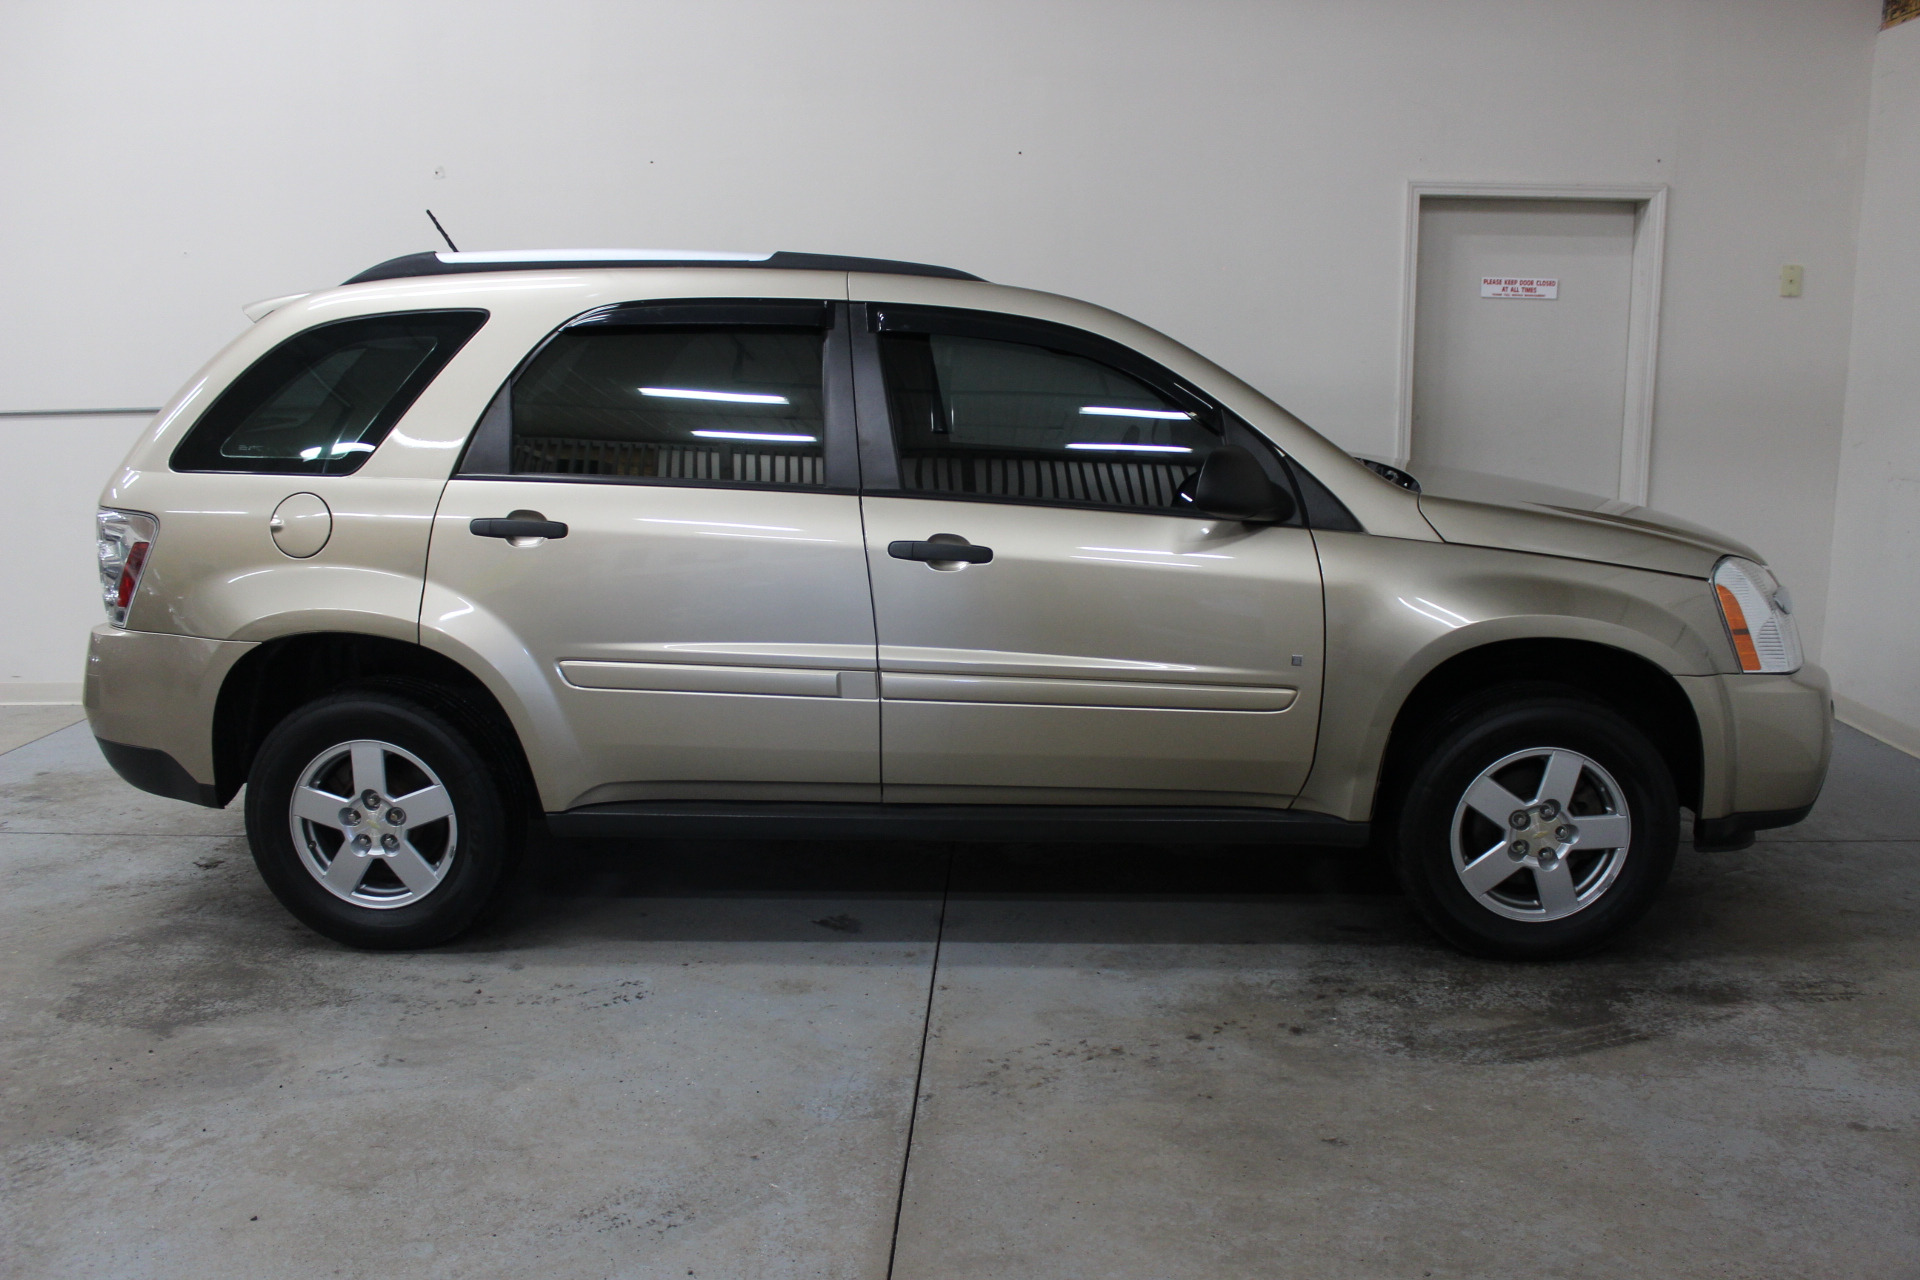 Used Chevy Equinox >> 2007 Chevrolet Equinox LS - Biscayne Auto Sales | Pre-owned Dealership | Ontario, NY